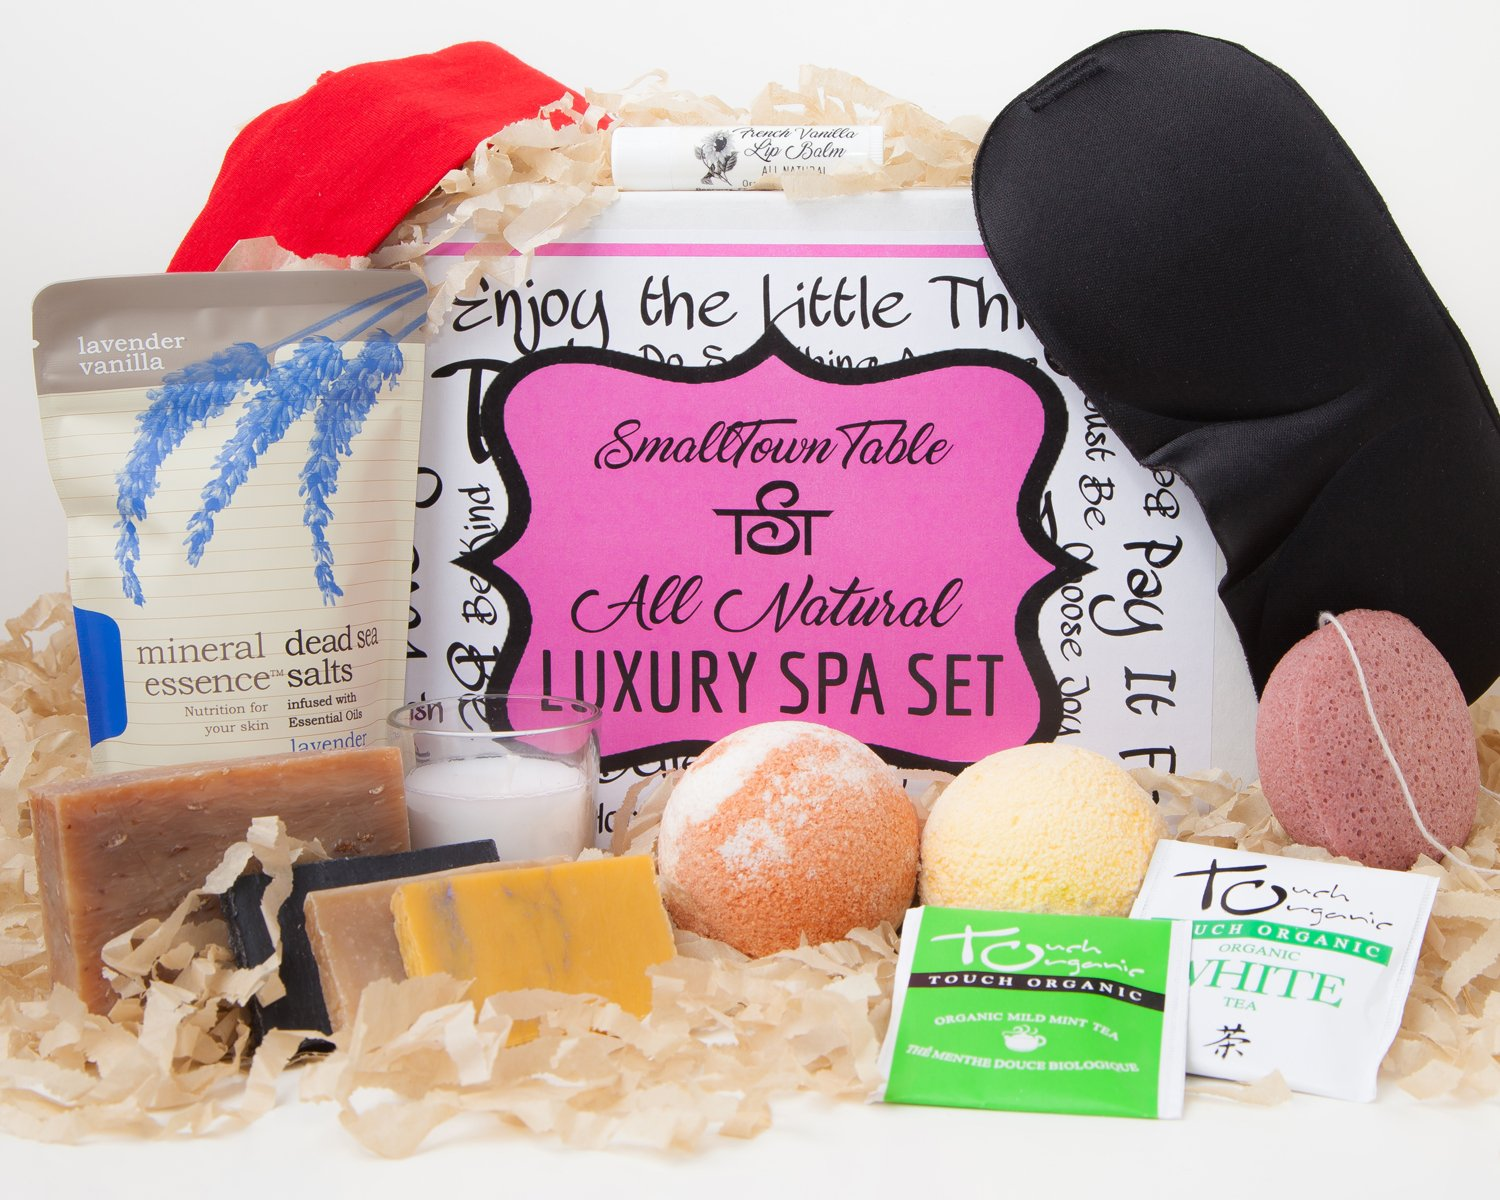 Spa Kit Relaxation Gift Set Two Bath Bombs, Bath Salt, All Natural Handmade Soaps, Konjac Sponge, Sleep Mask, Lip Balm, Candle, Tea, Headband, Upscale Bath and Body Spa Package Organic